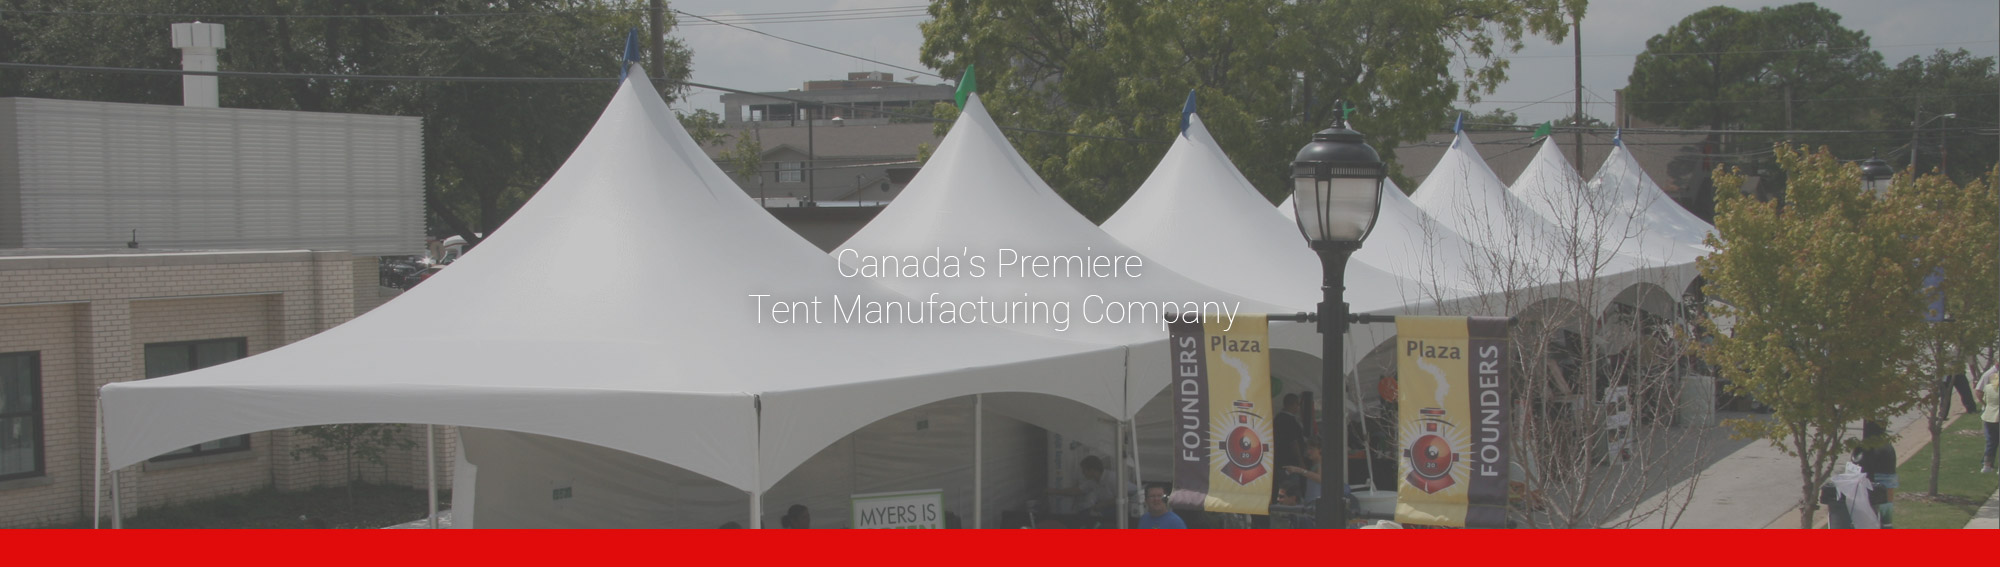 Ideal Canopy Tent u0026 Structure | Party Tents Construction Shelters Event Tents u0026 Structures & Ideal Canopy Tent u0026 Structure | Party Tents Construction Shelters ...